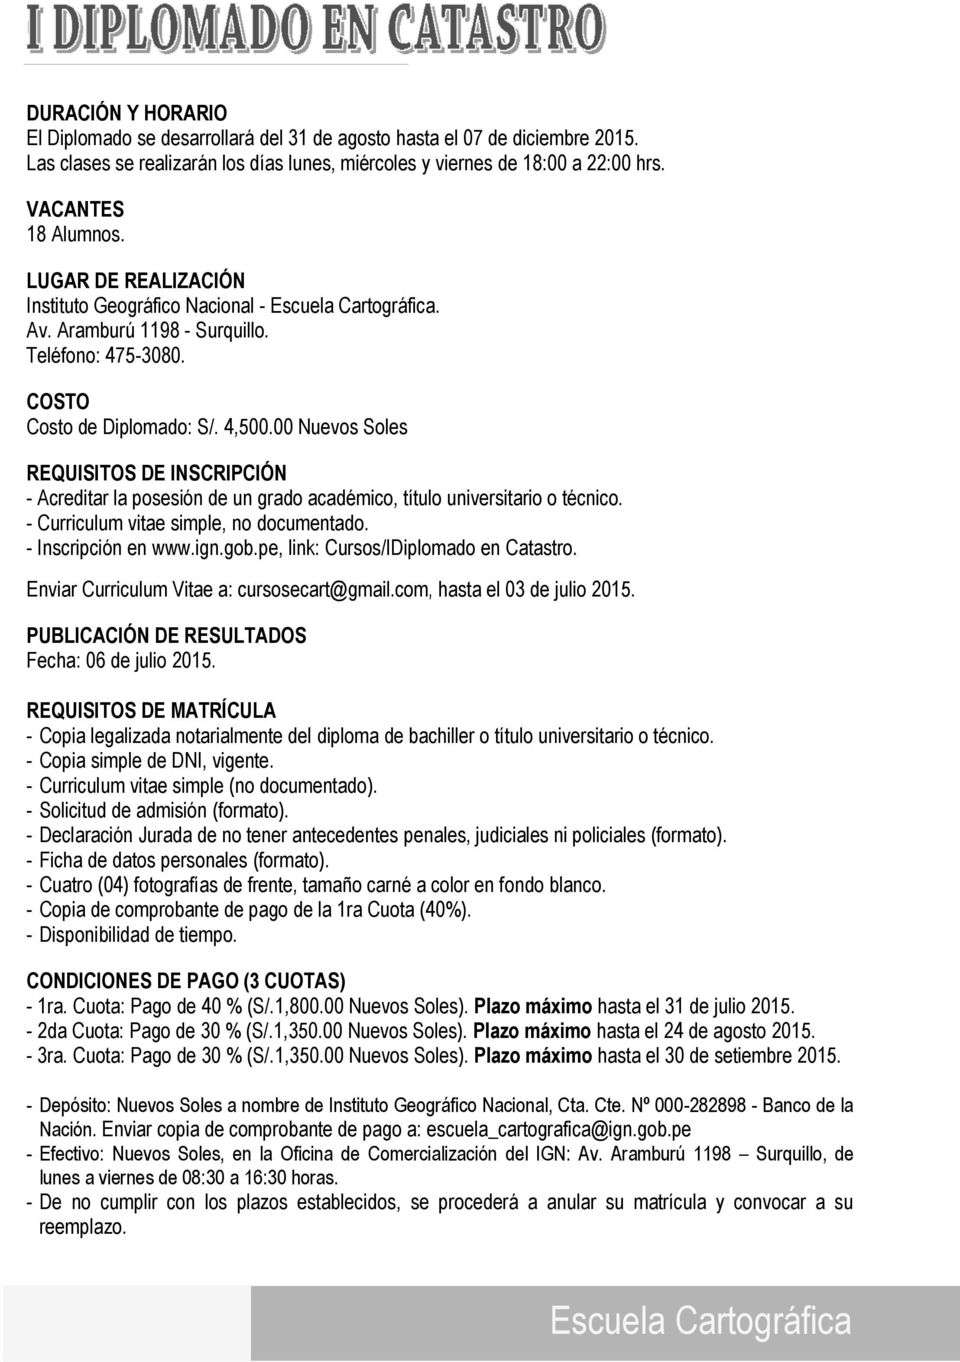 00 Nuevos Soles REQUISITOS DE INSCRIPCIÓN - Acreditar la posesión de un grado académico, título universitario o técnico. - Curriculum vitae simple, no documentado. - Inscripción en www.ign.gob.